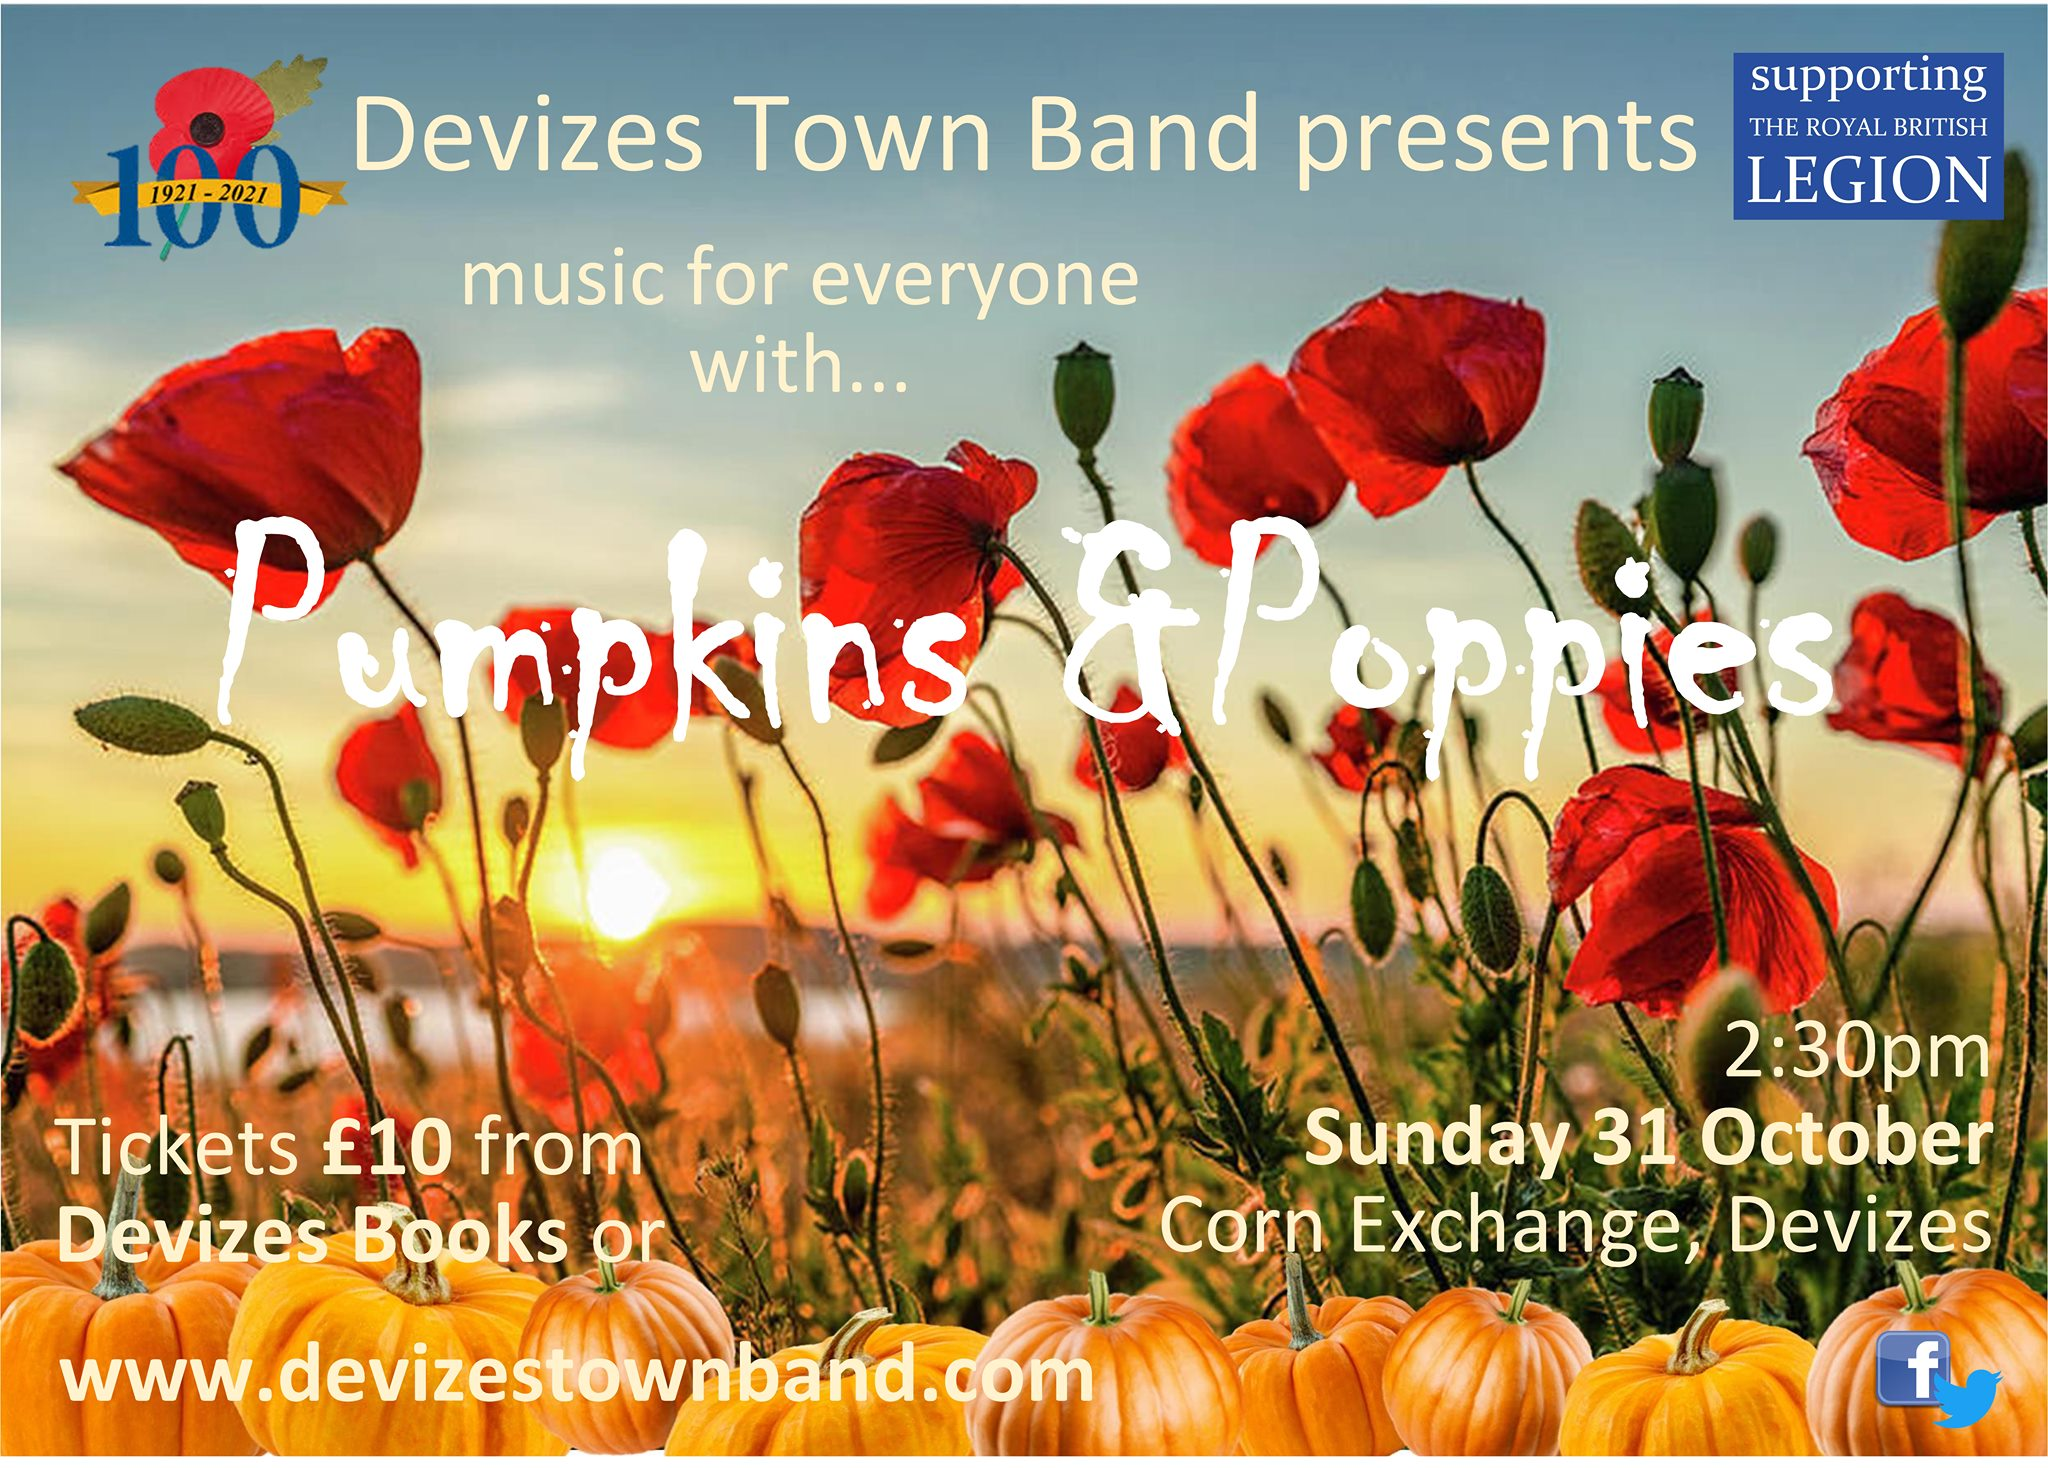 Pumpkins & Poppies with Devizes Town Band